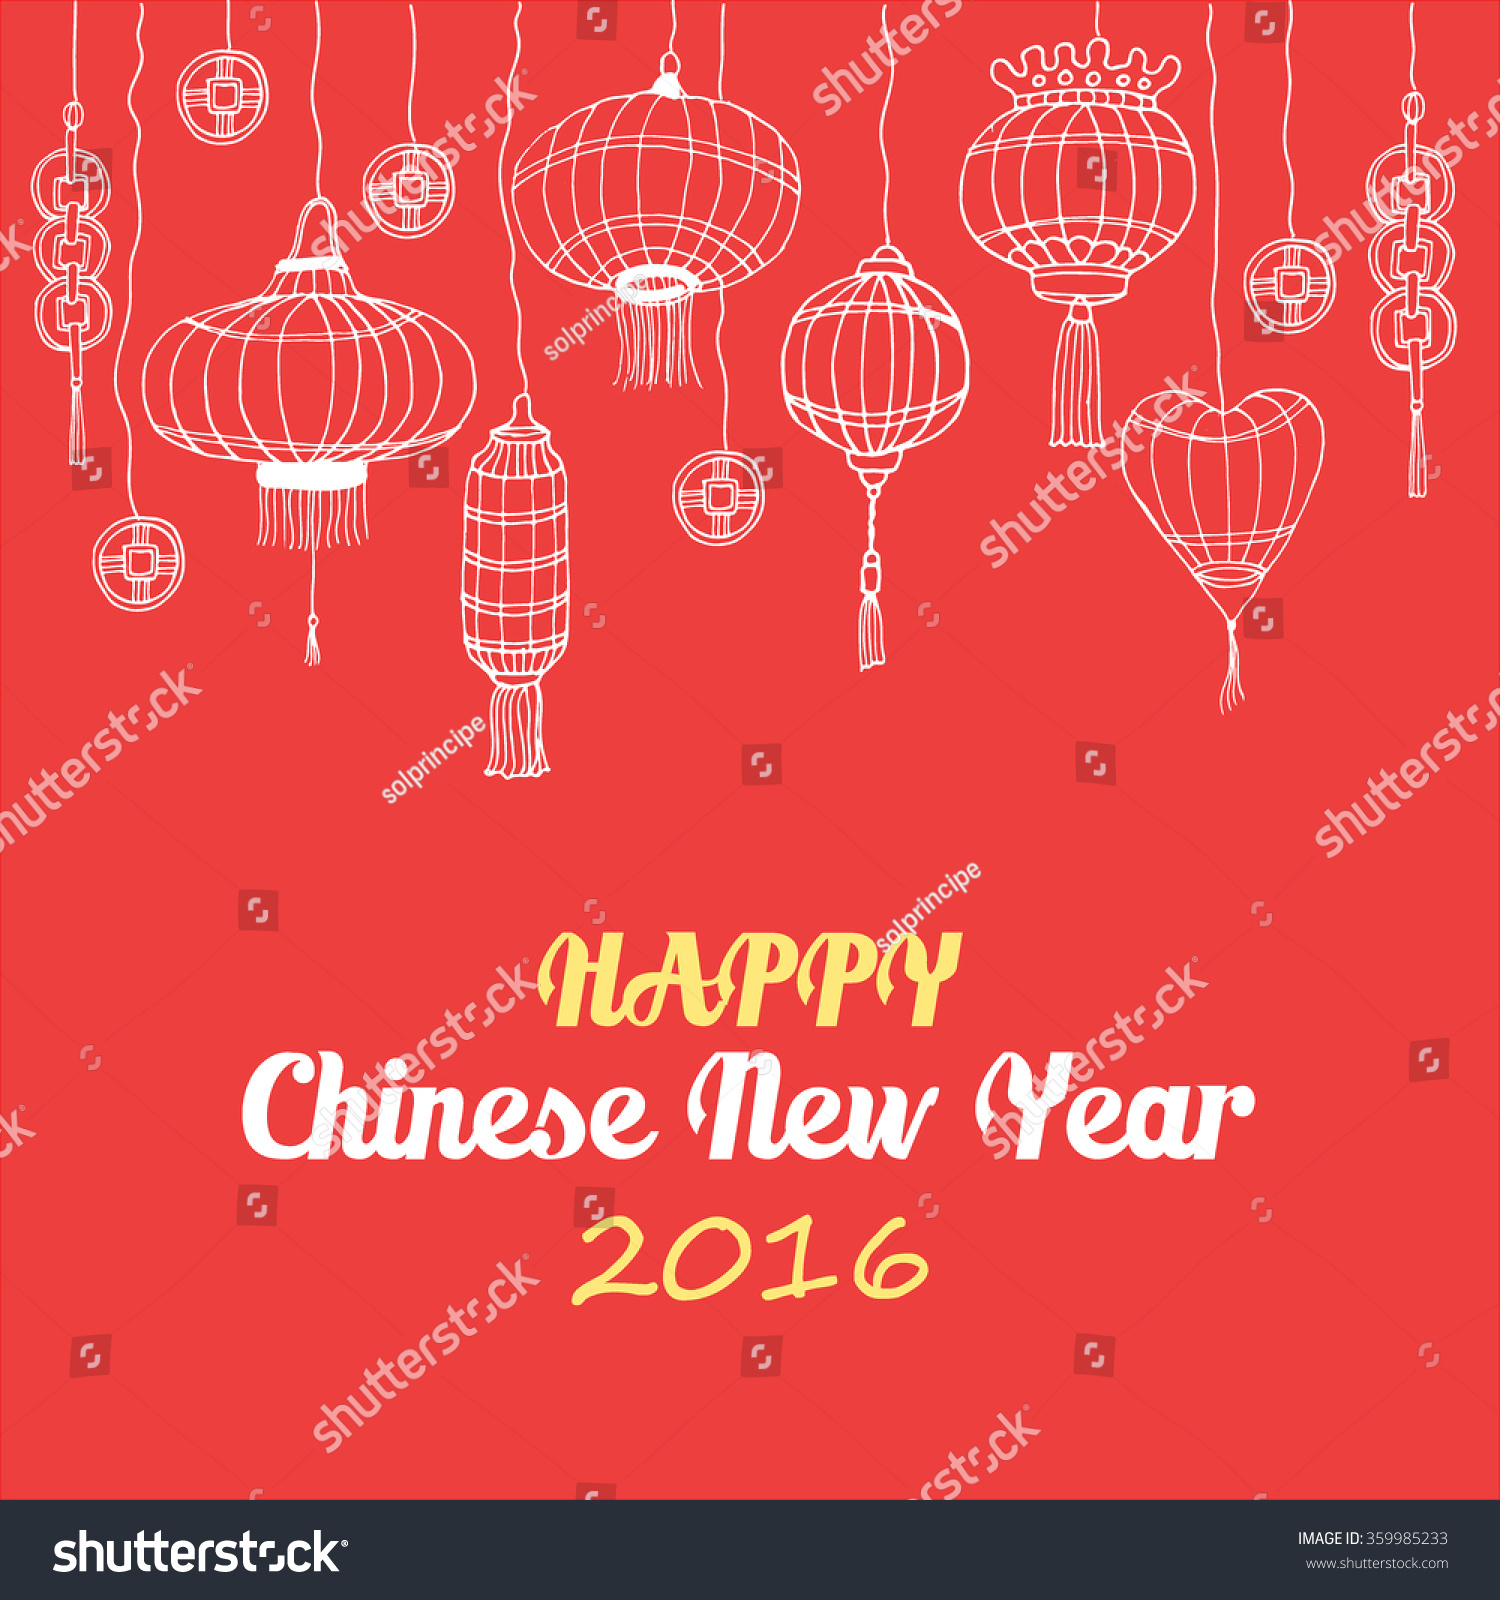 Happy Chinese New Year Postcard Golden Stock Vector 359985233 ...